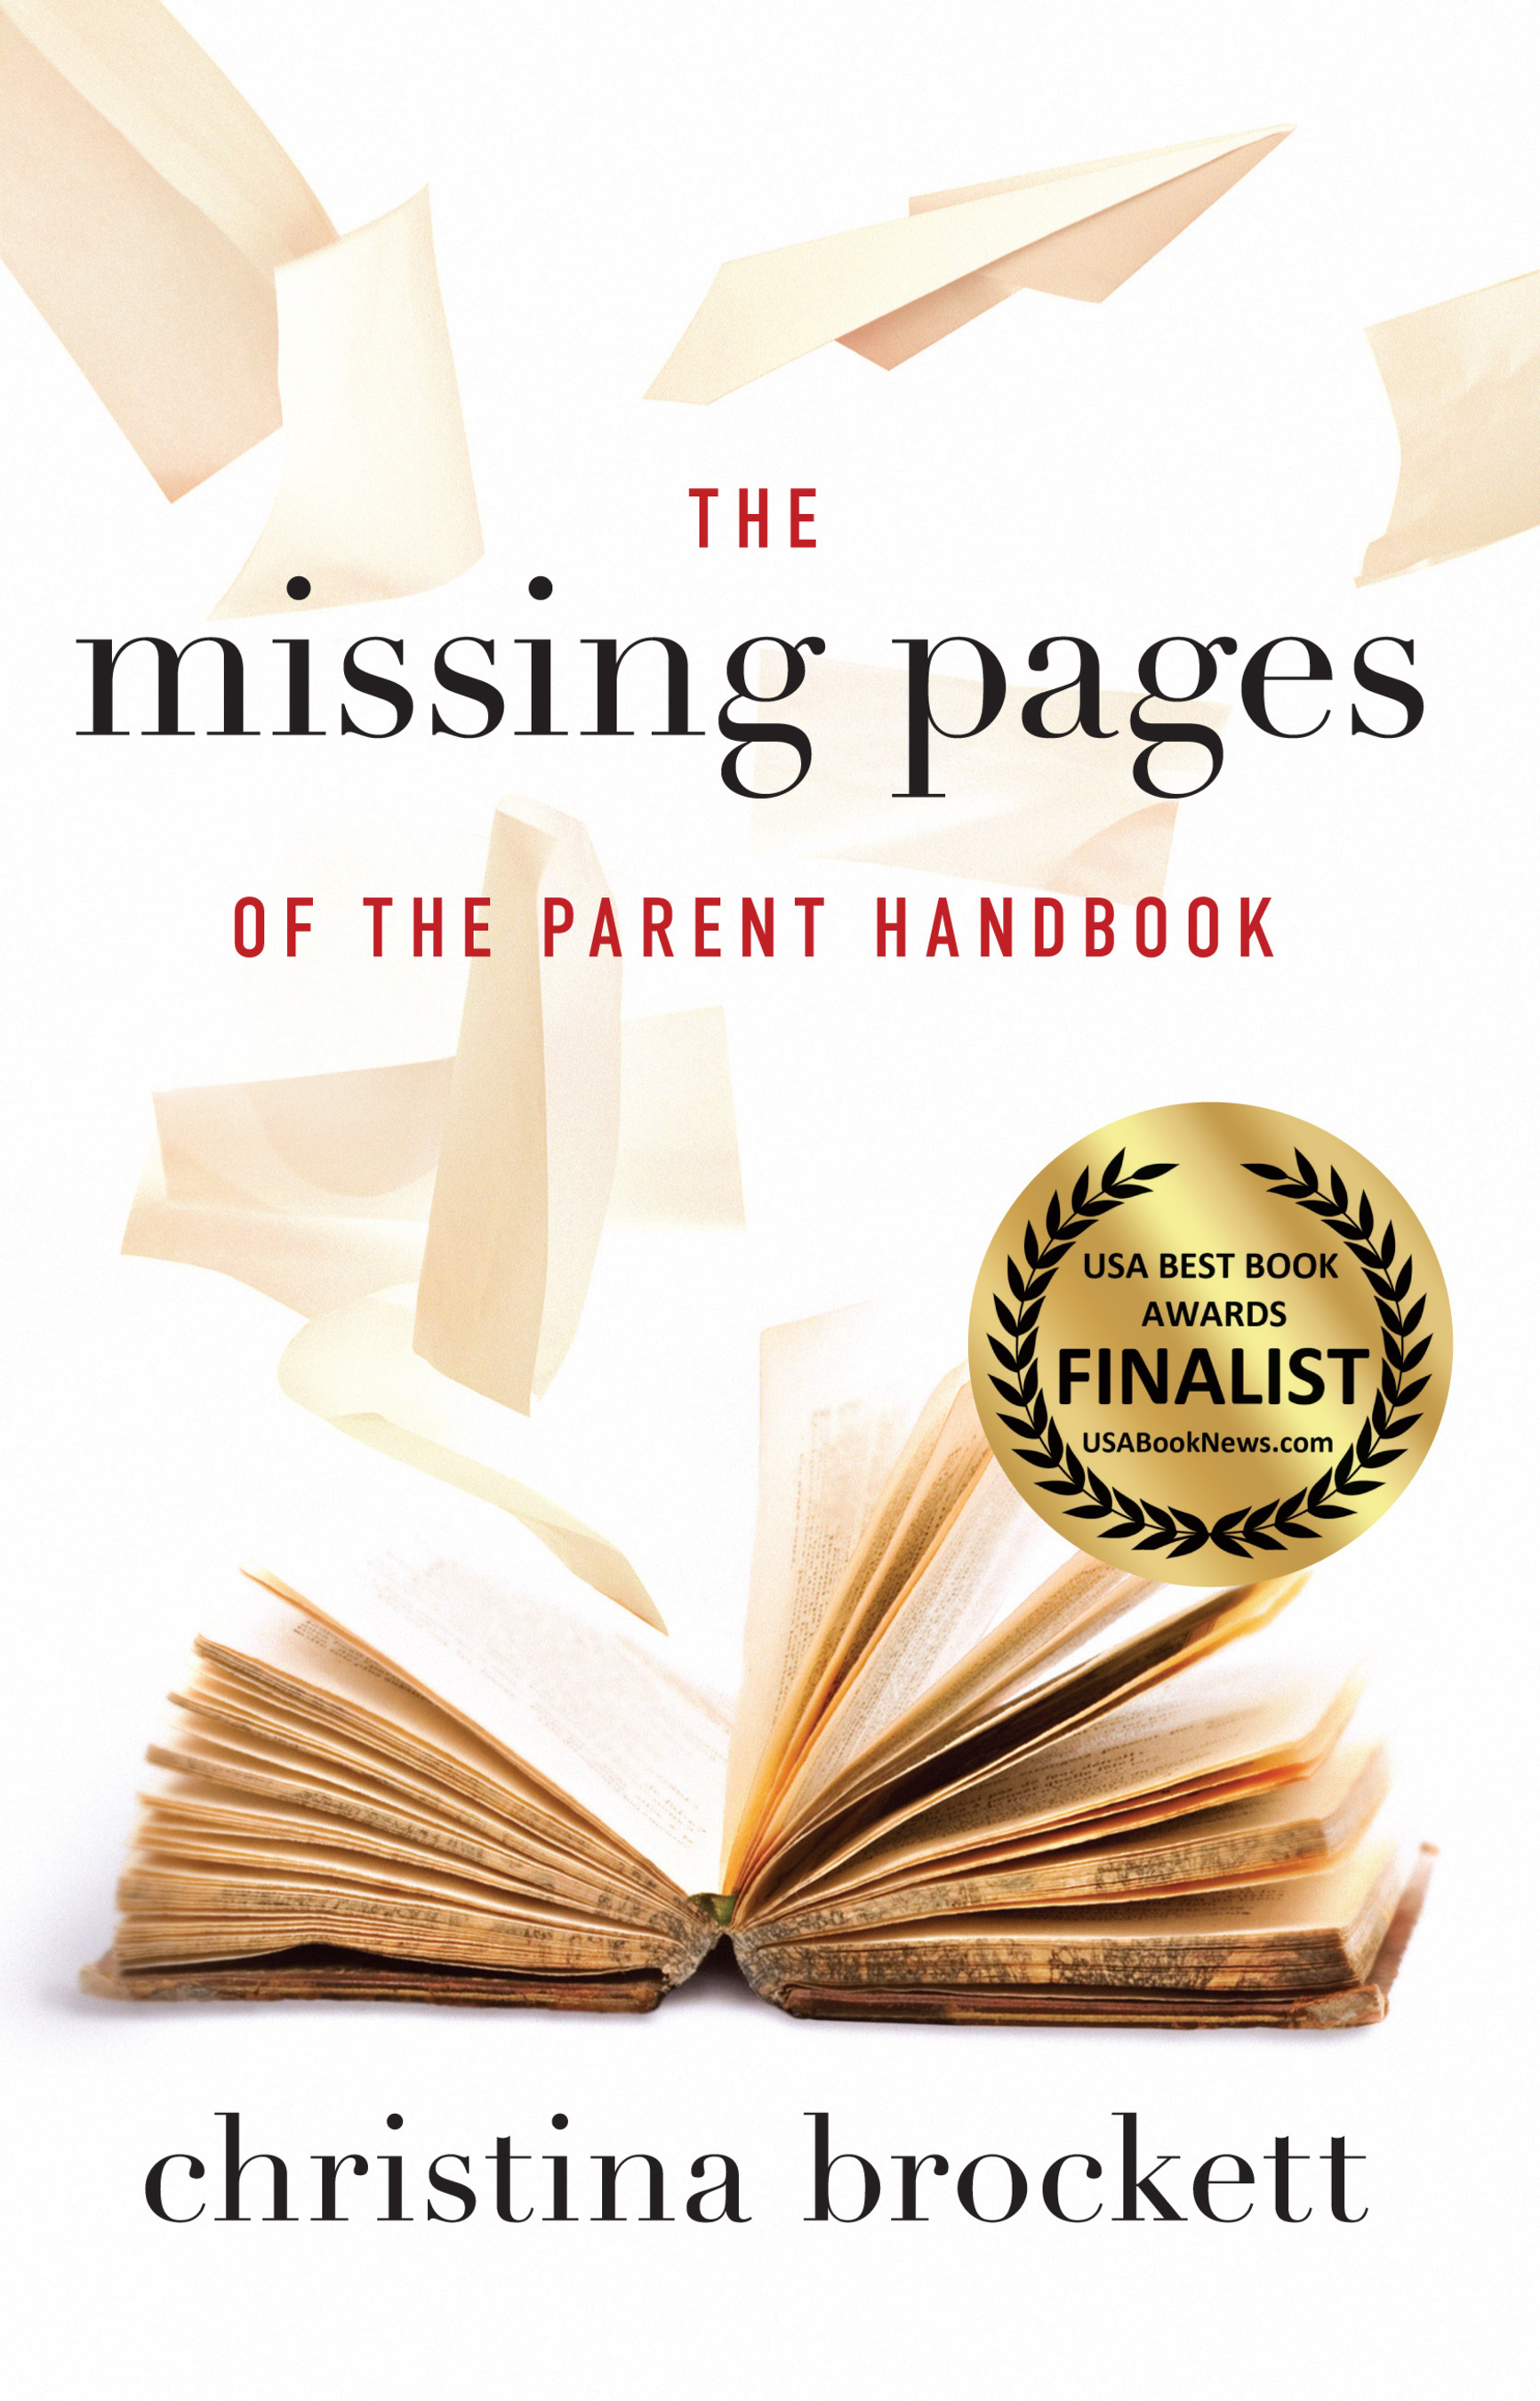 The Missing Pages of the Parent Handbook - book cover (PRNewsFoto/Christina Brockett)